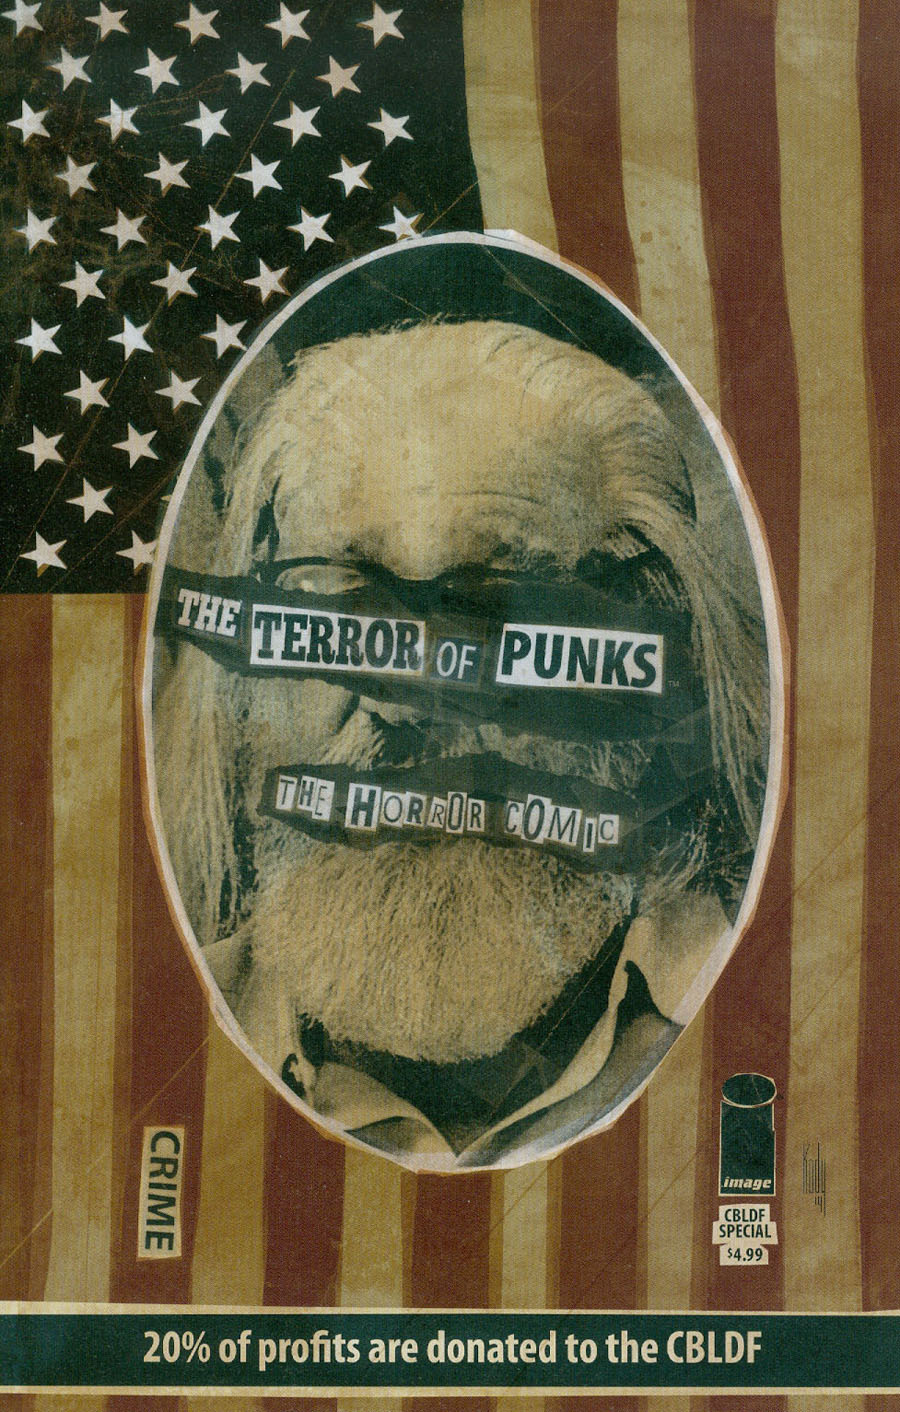 Punks The Comic CBLDF Special